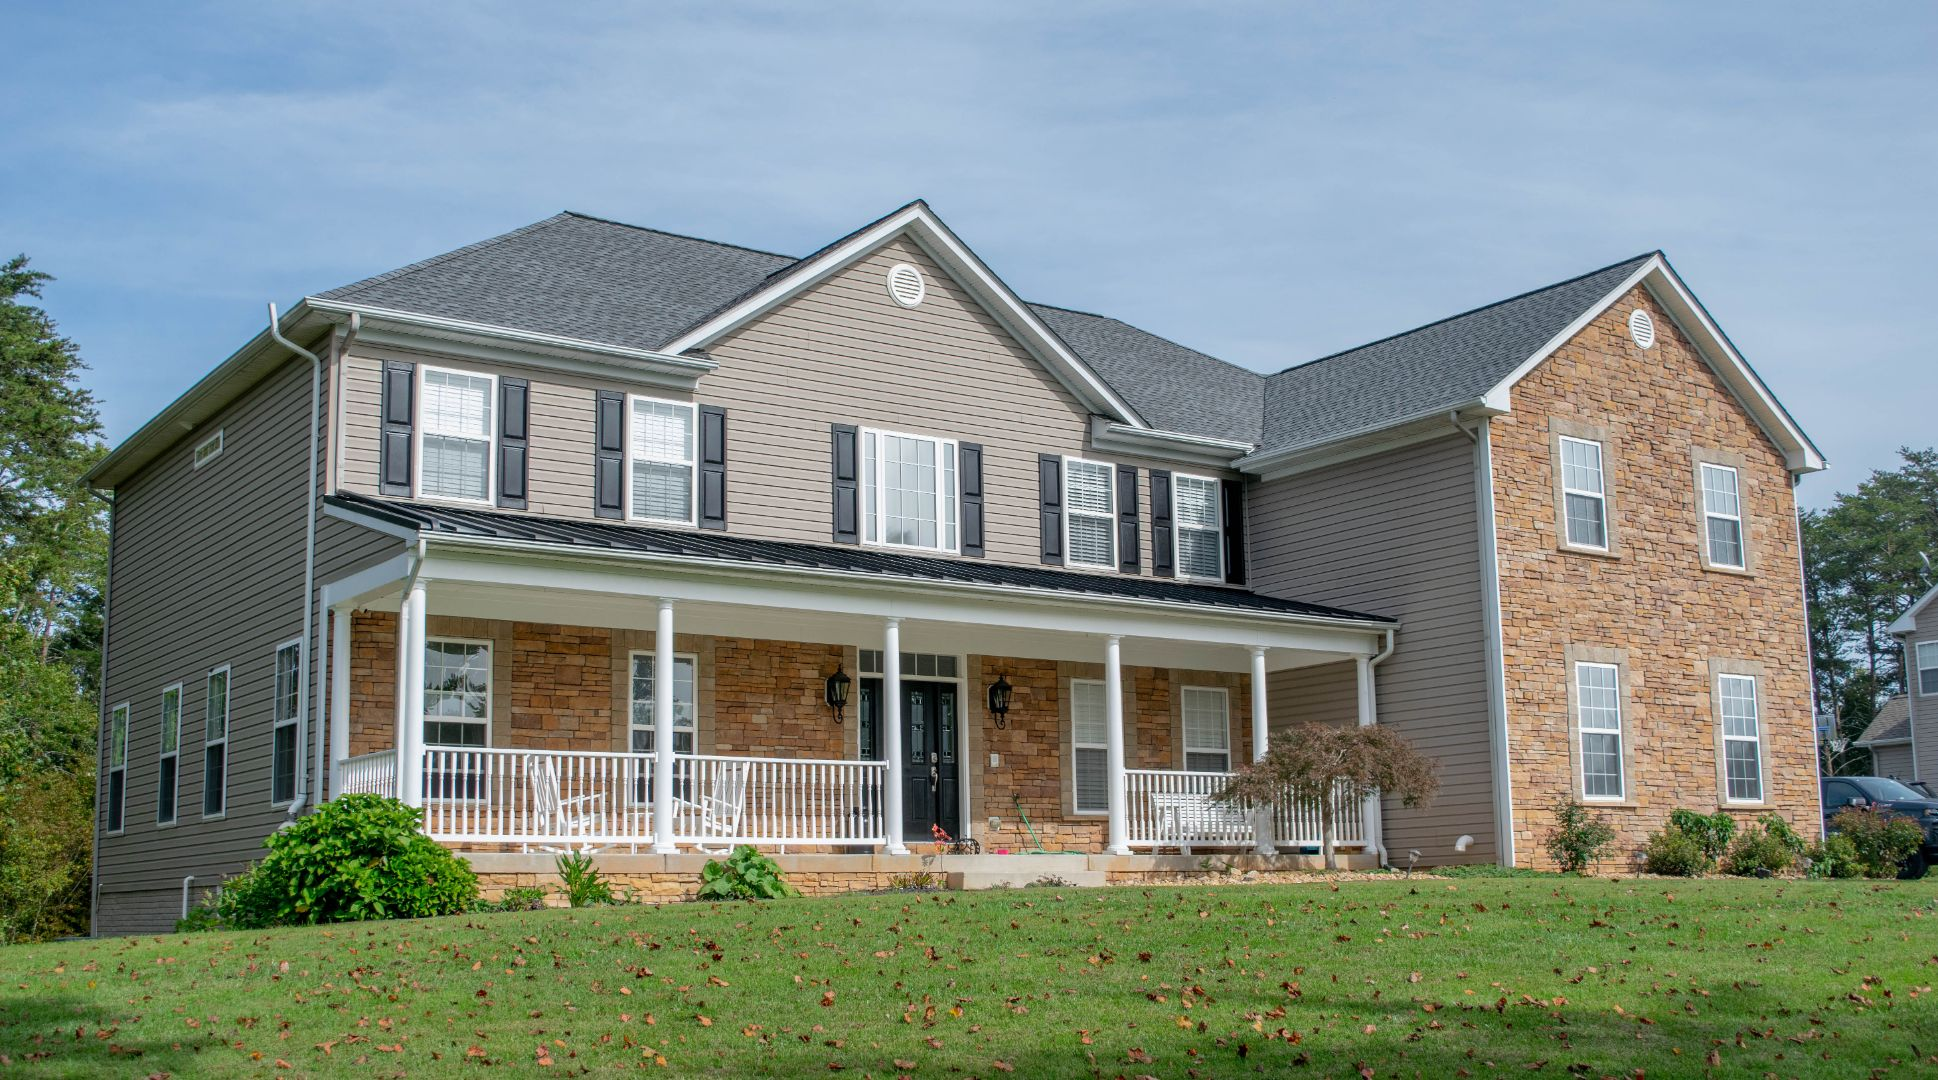 SmartRoof - Residential, Commercial Greenville DE Roofing Contractors